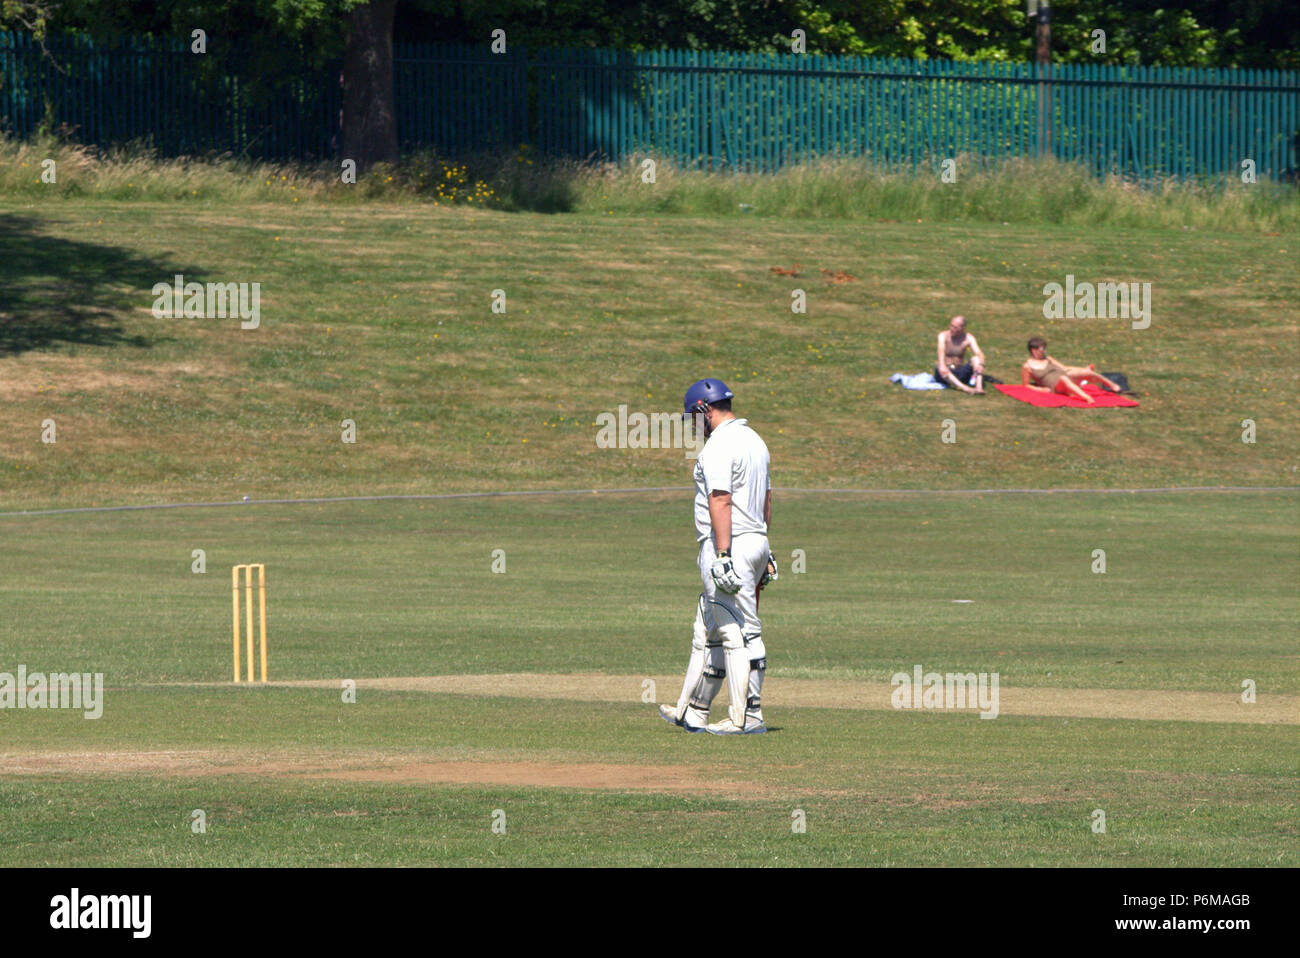 Glasgow, Scotland, UK 1st July. UK Weather:Sunny sizzling weather continues and locals and tourists in the city .Sunday league cricket in Partick saw Prestwick and west of Scotland enjoy the sun.. Credit: gerard ferry/Alamy Live News Stock Photo